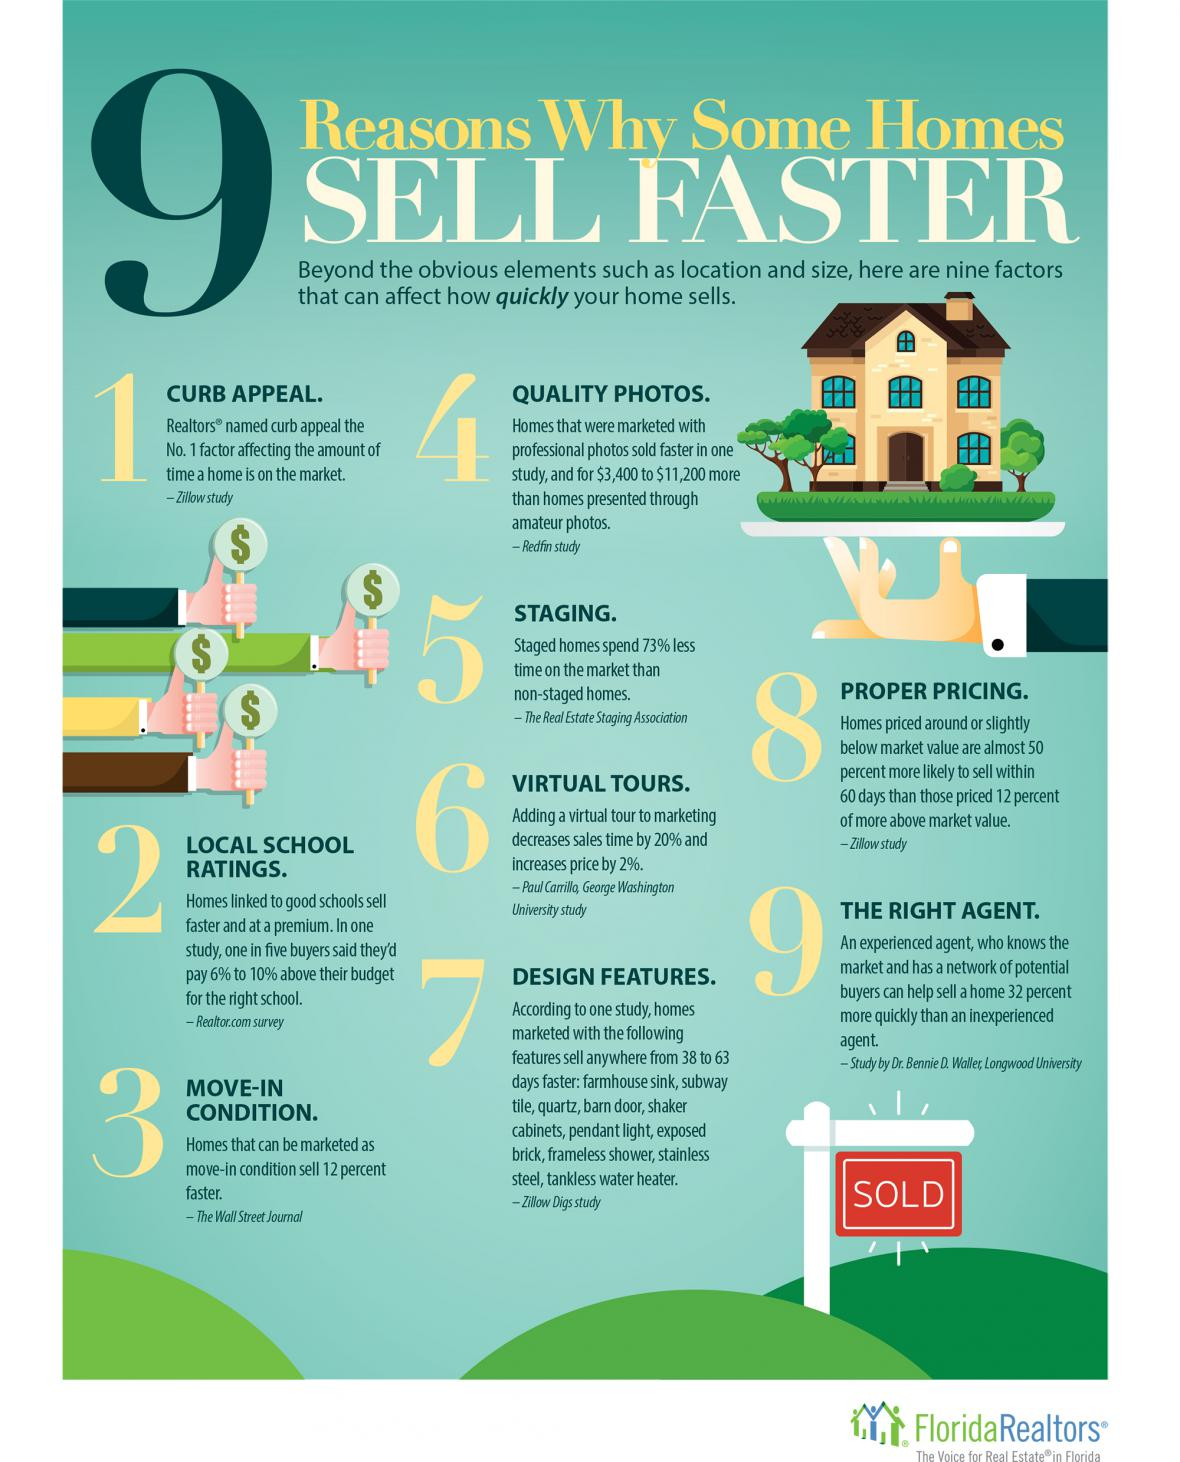 9 Resons Why Some Homes Sell Faster